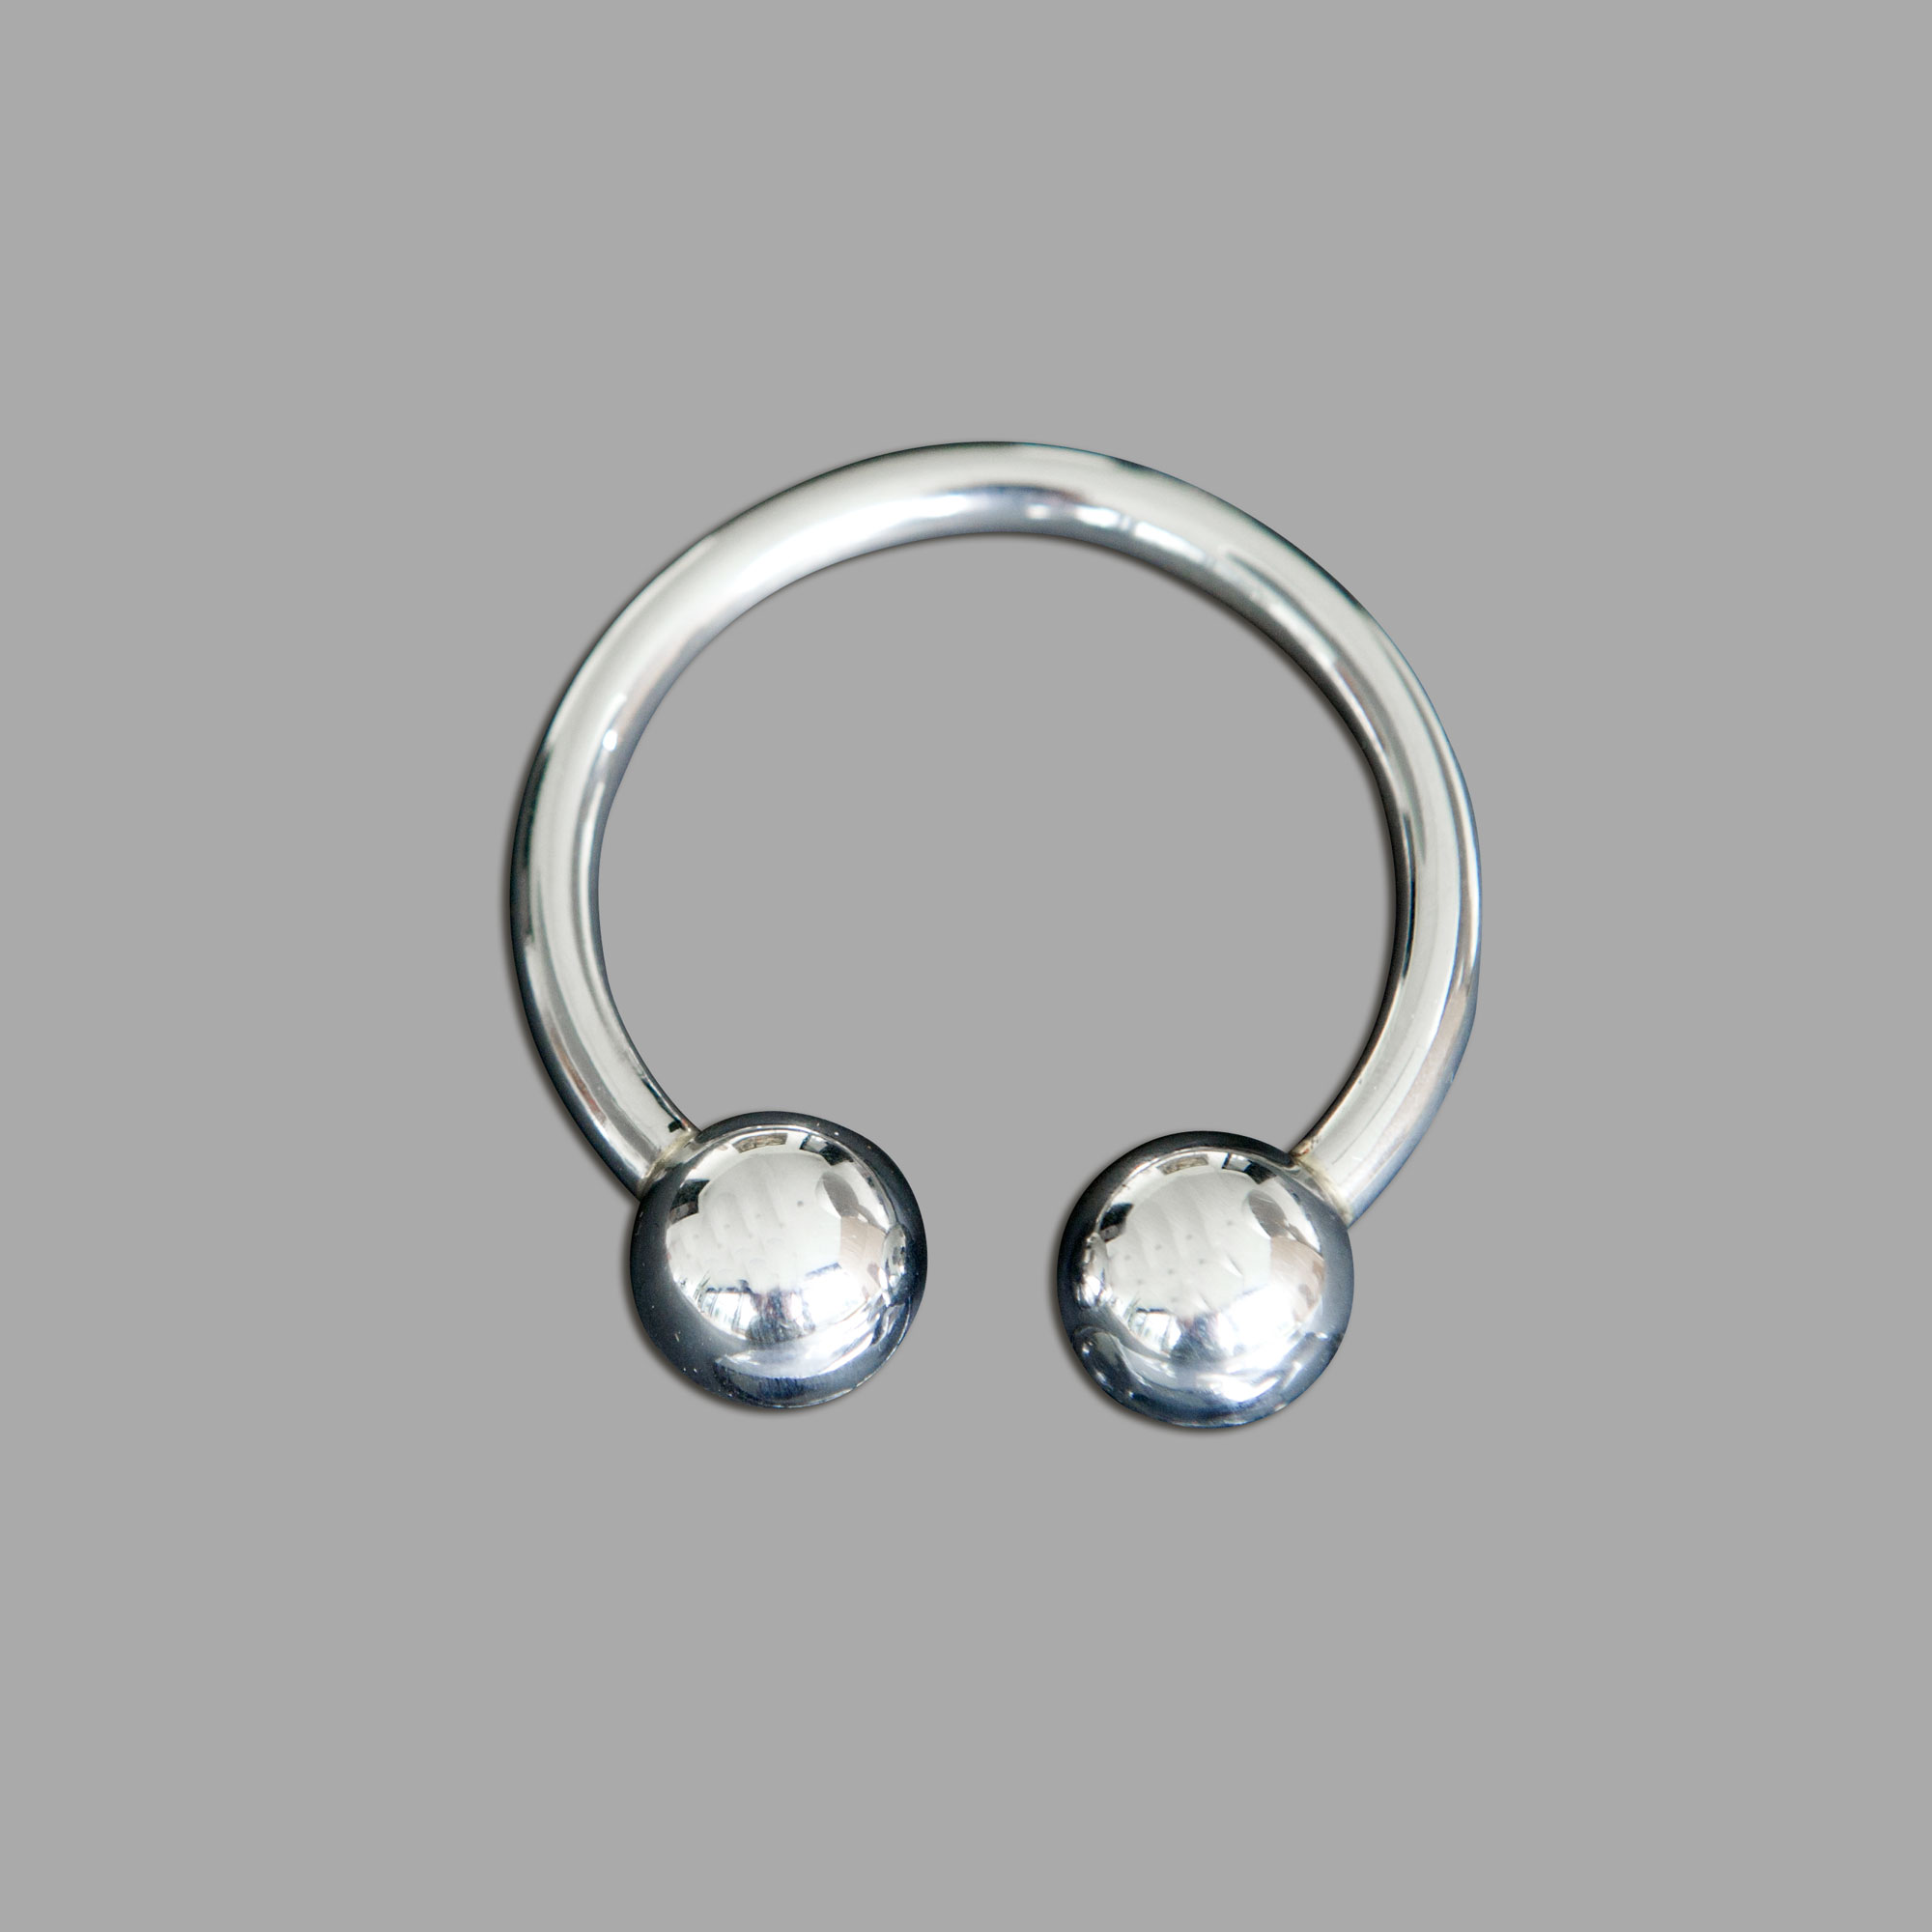 Decorative Cock Ring Buy Horseshoe Cock Ring From Meo Cock Rings